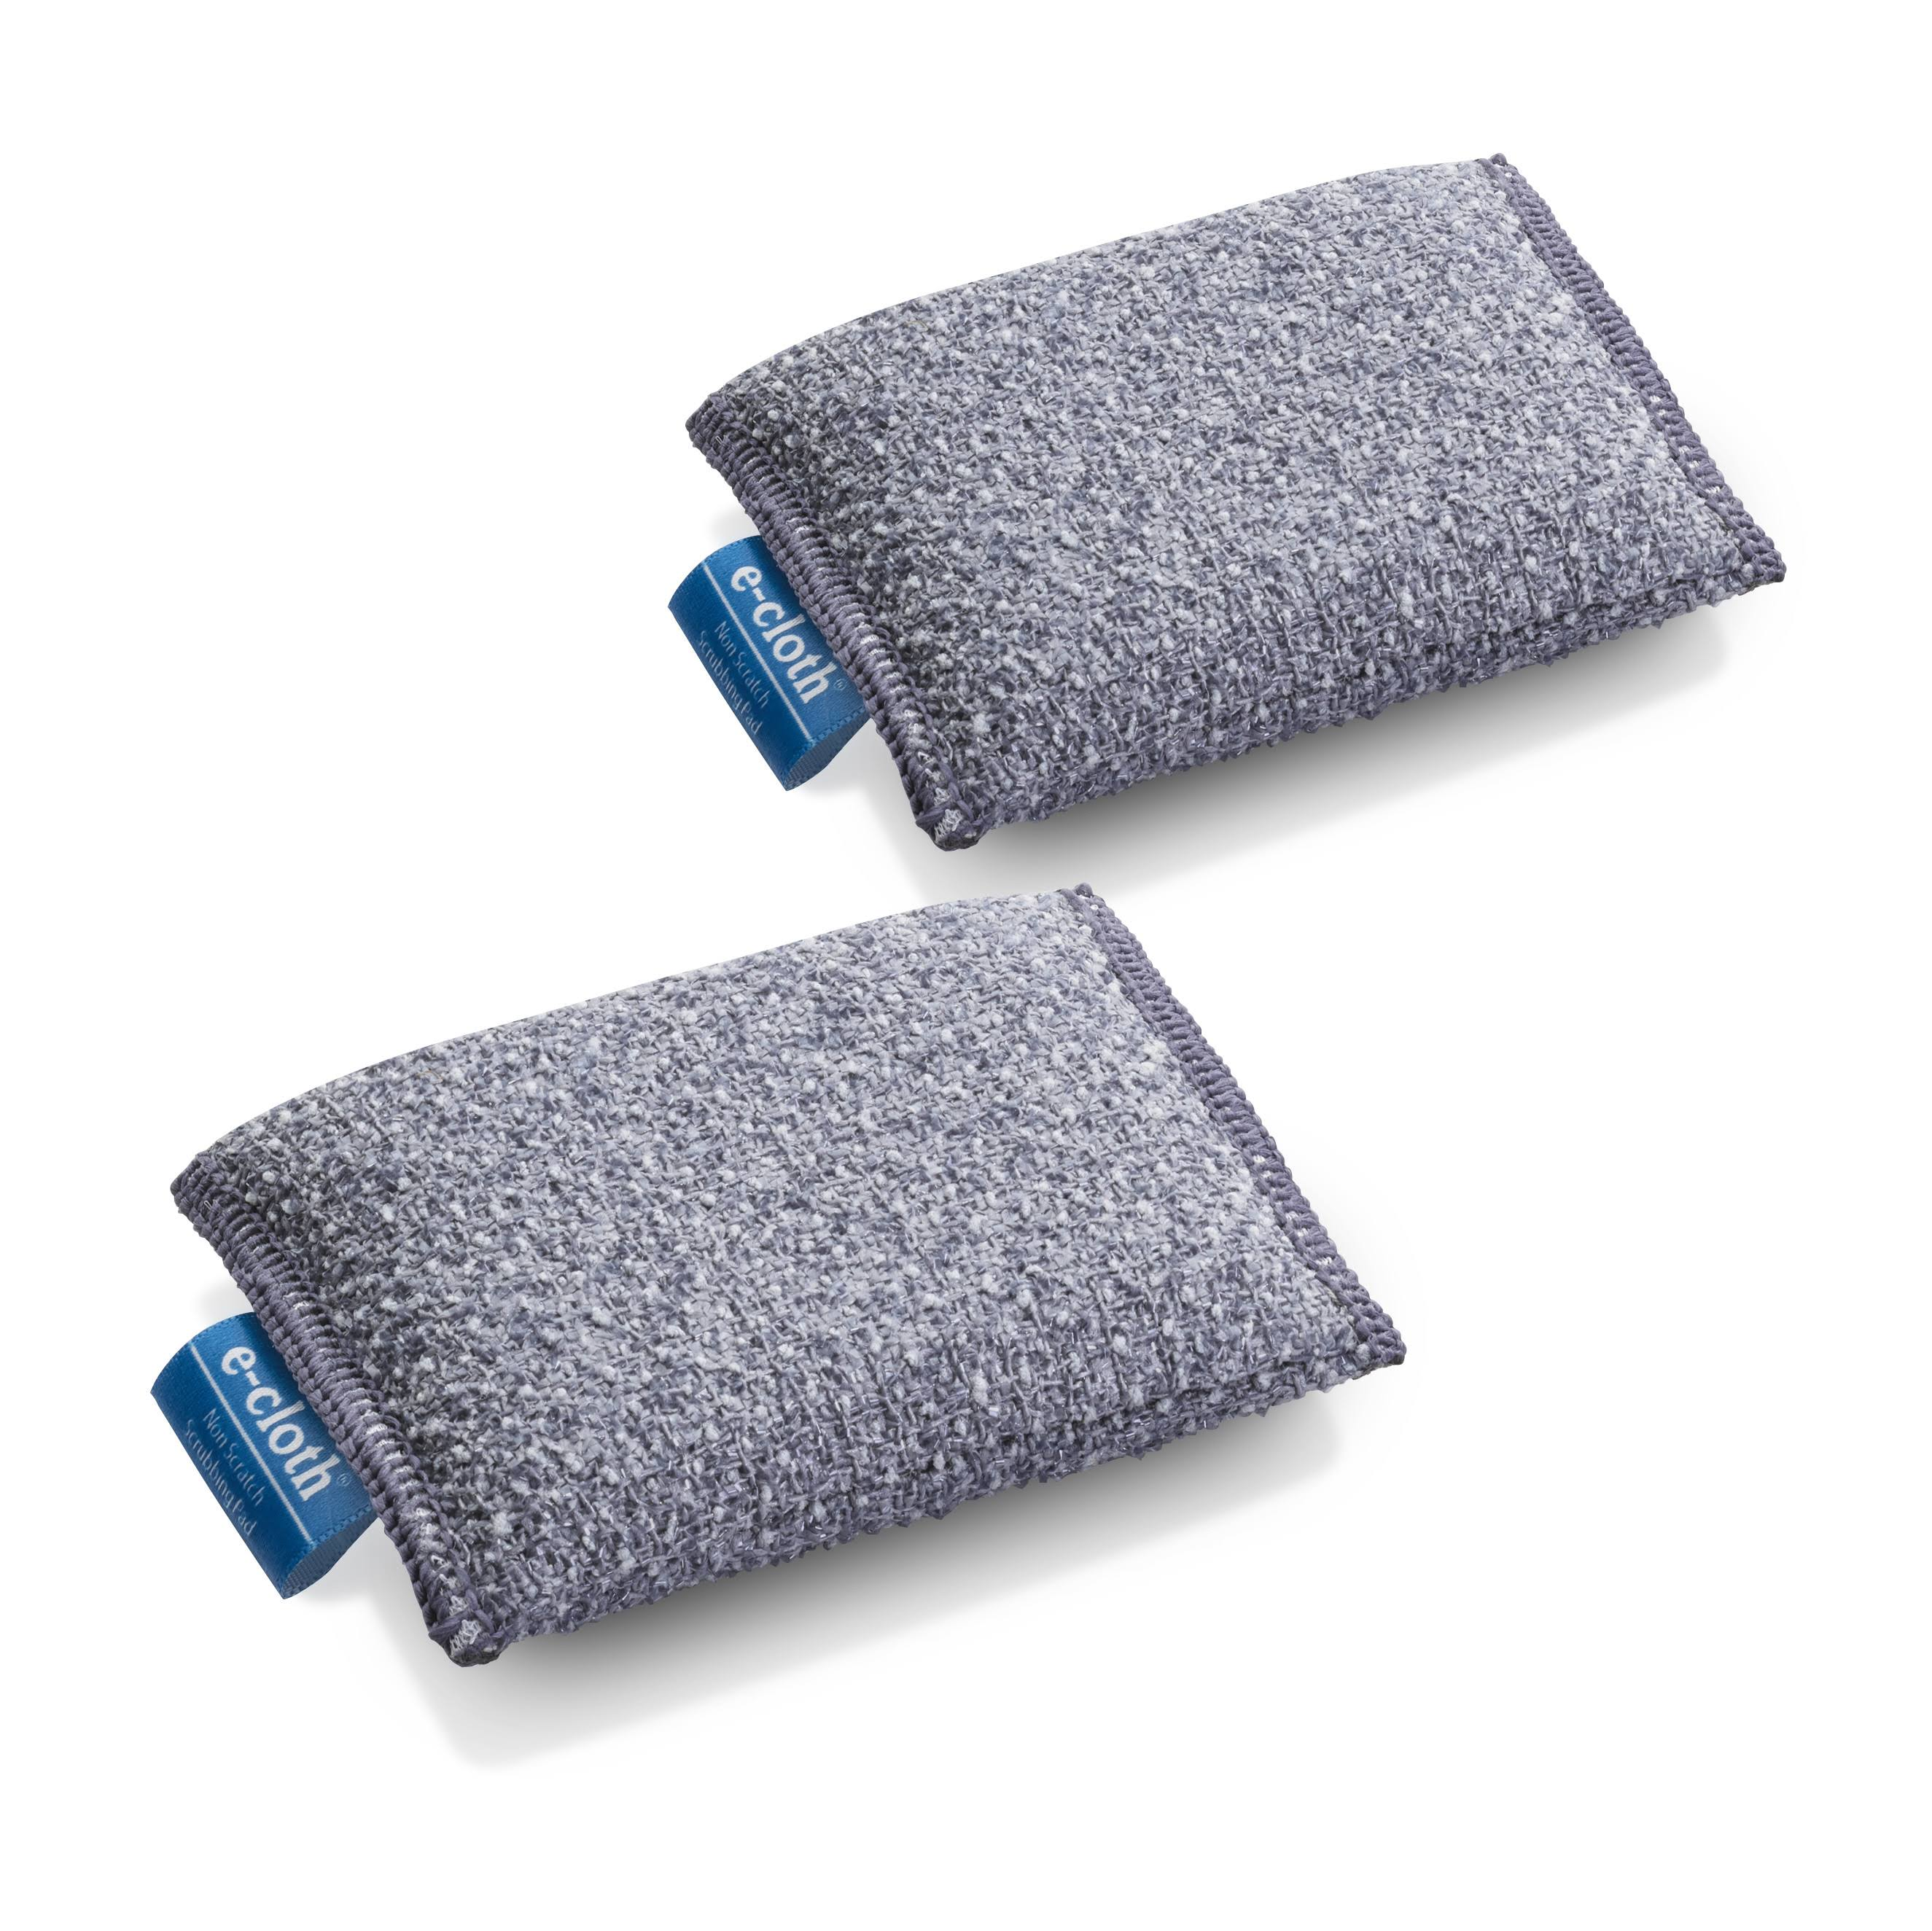 E-Cloth Scrubbing Pad - 2 Pack